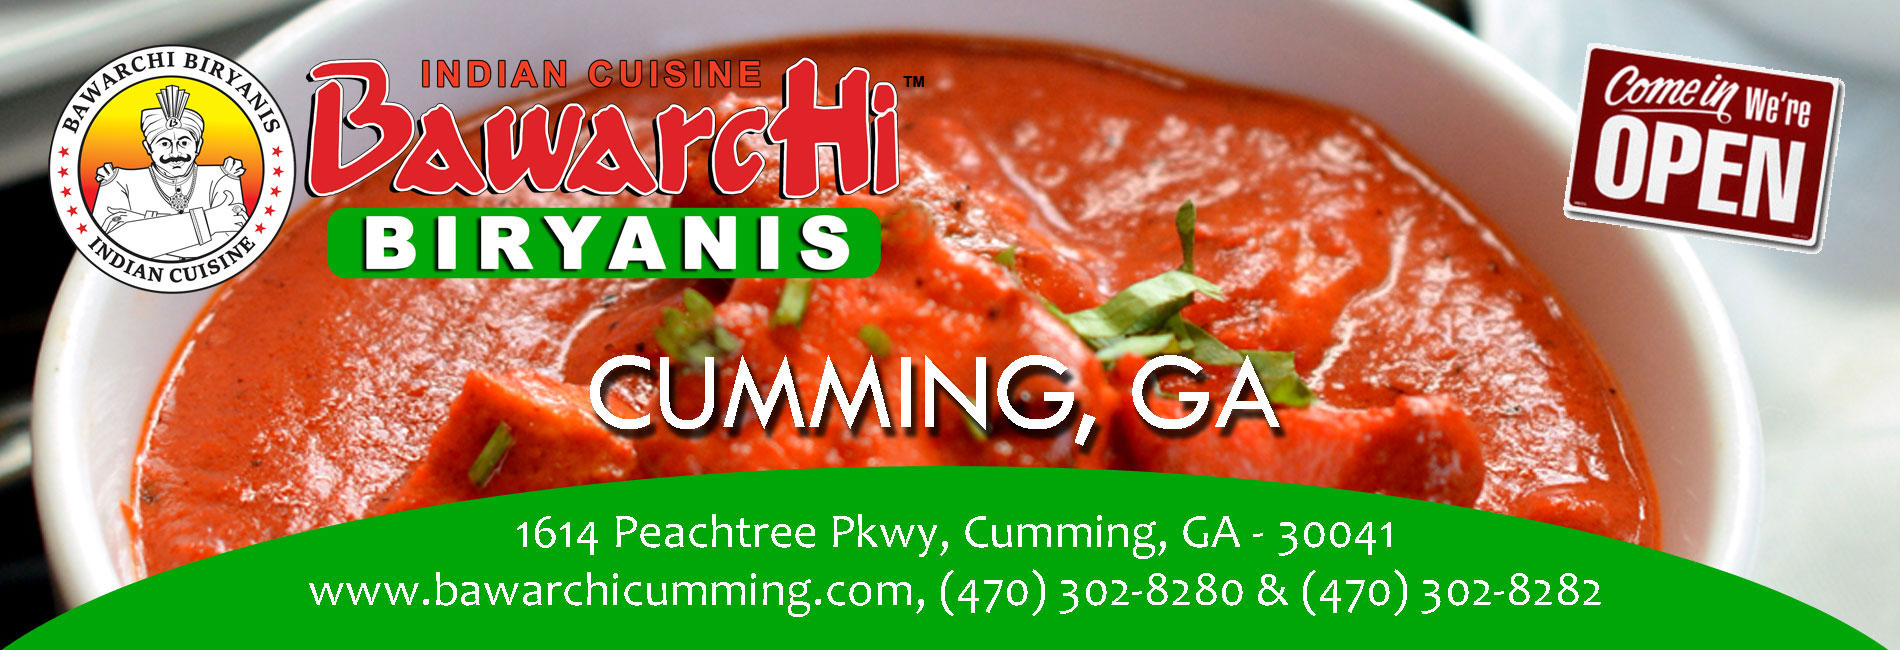 Bawarchi Cumming, GA - Now Open